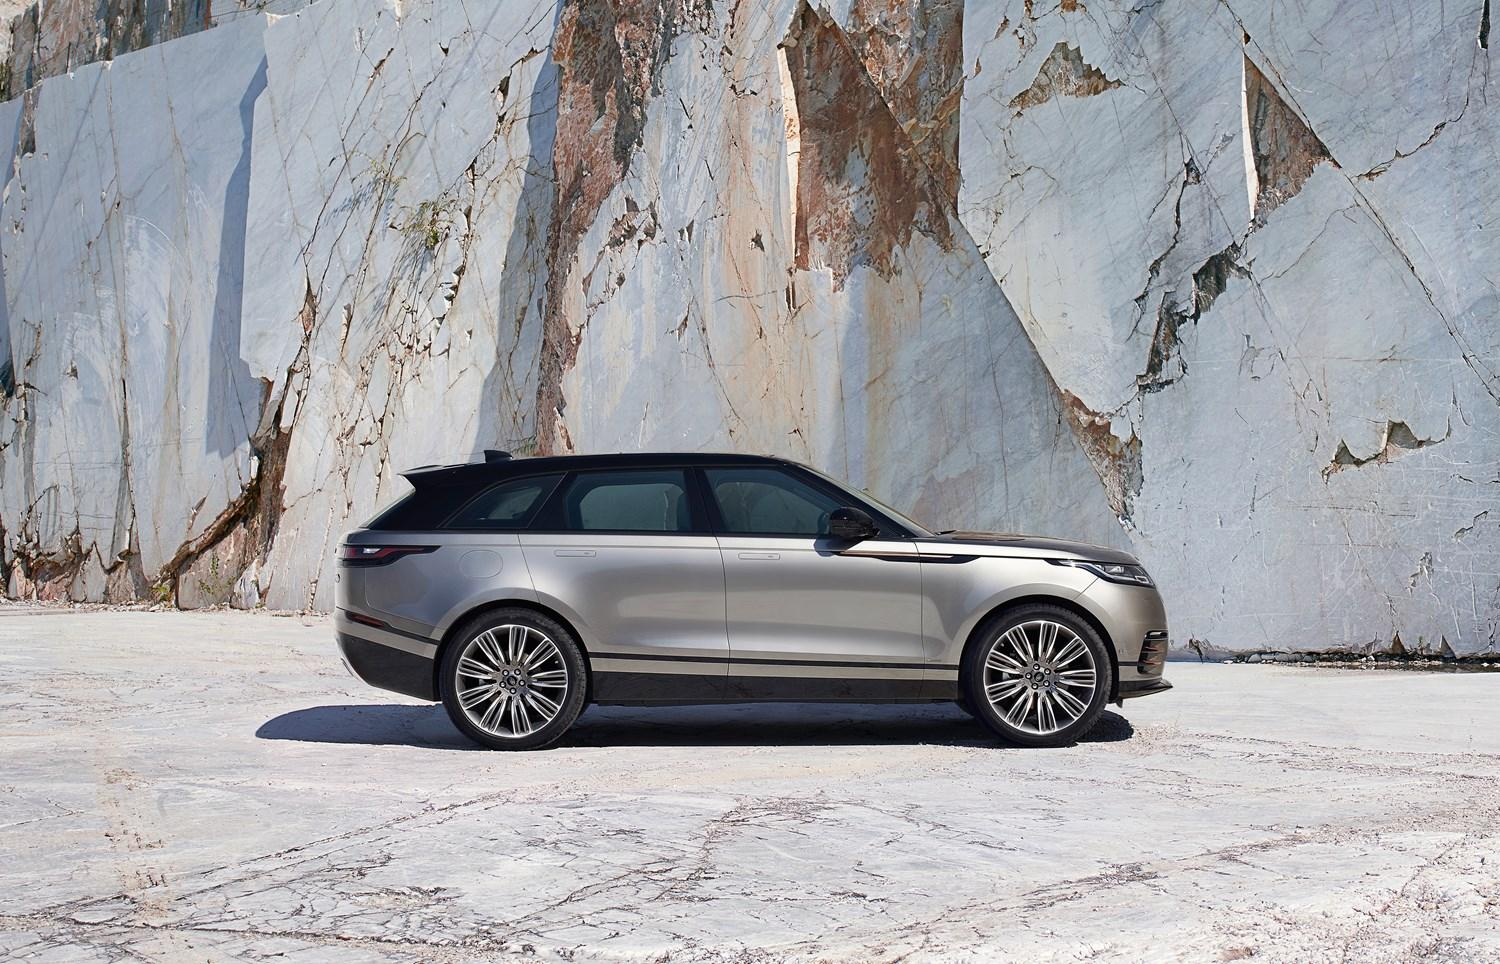 Silver Range rover velar parked in front of a granite cliff